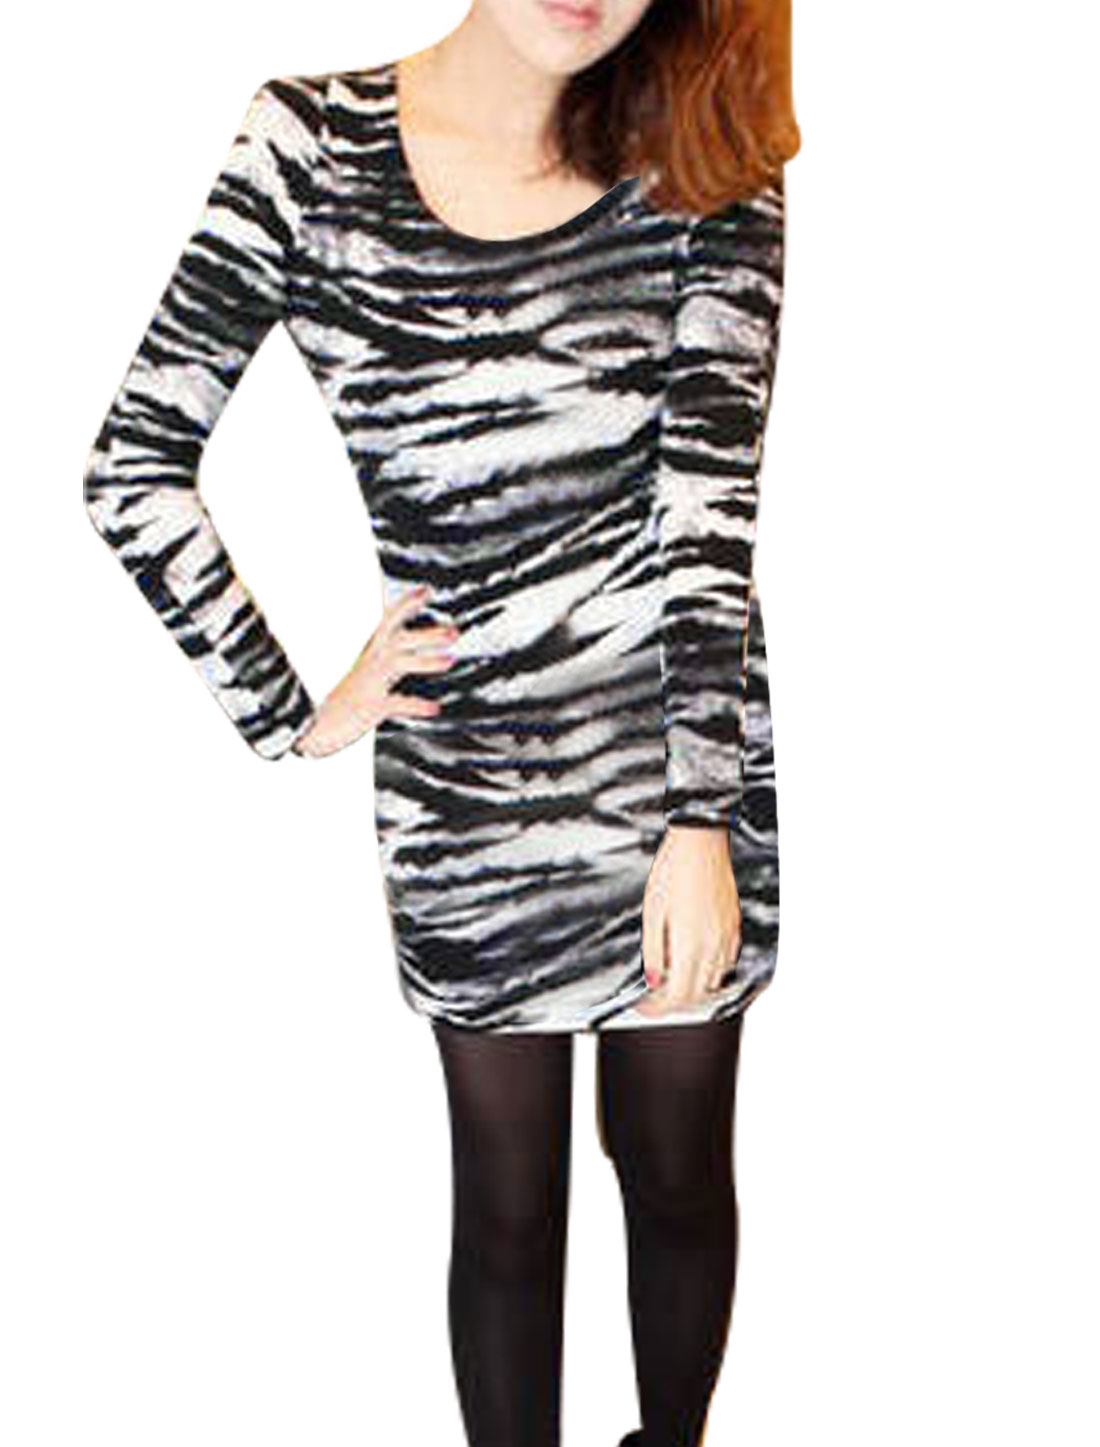 Black Zebra Print Stretchy Pullover Tunic Shirt XS for Women